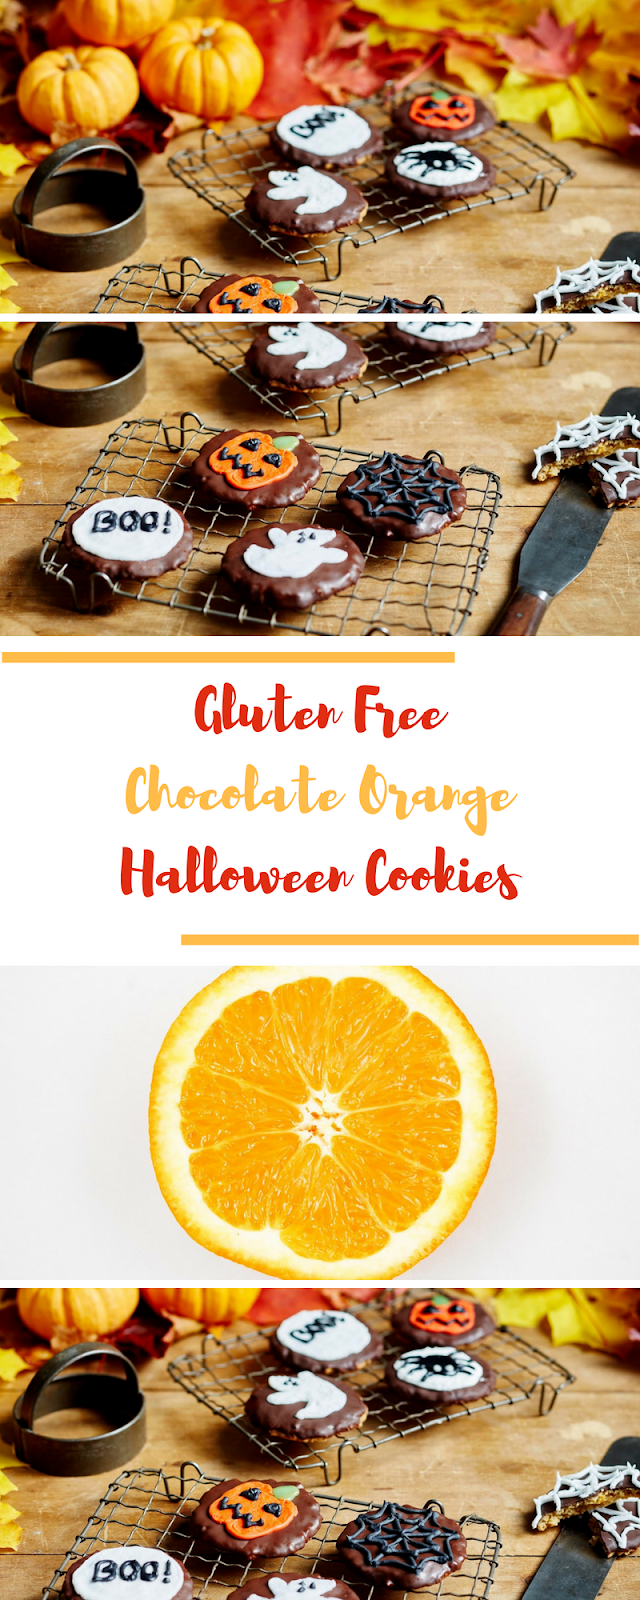 Gluten Free Chocolate Orange Halloween Cookies